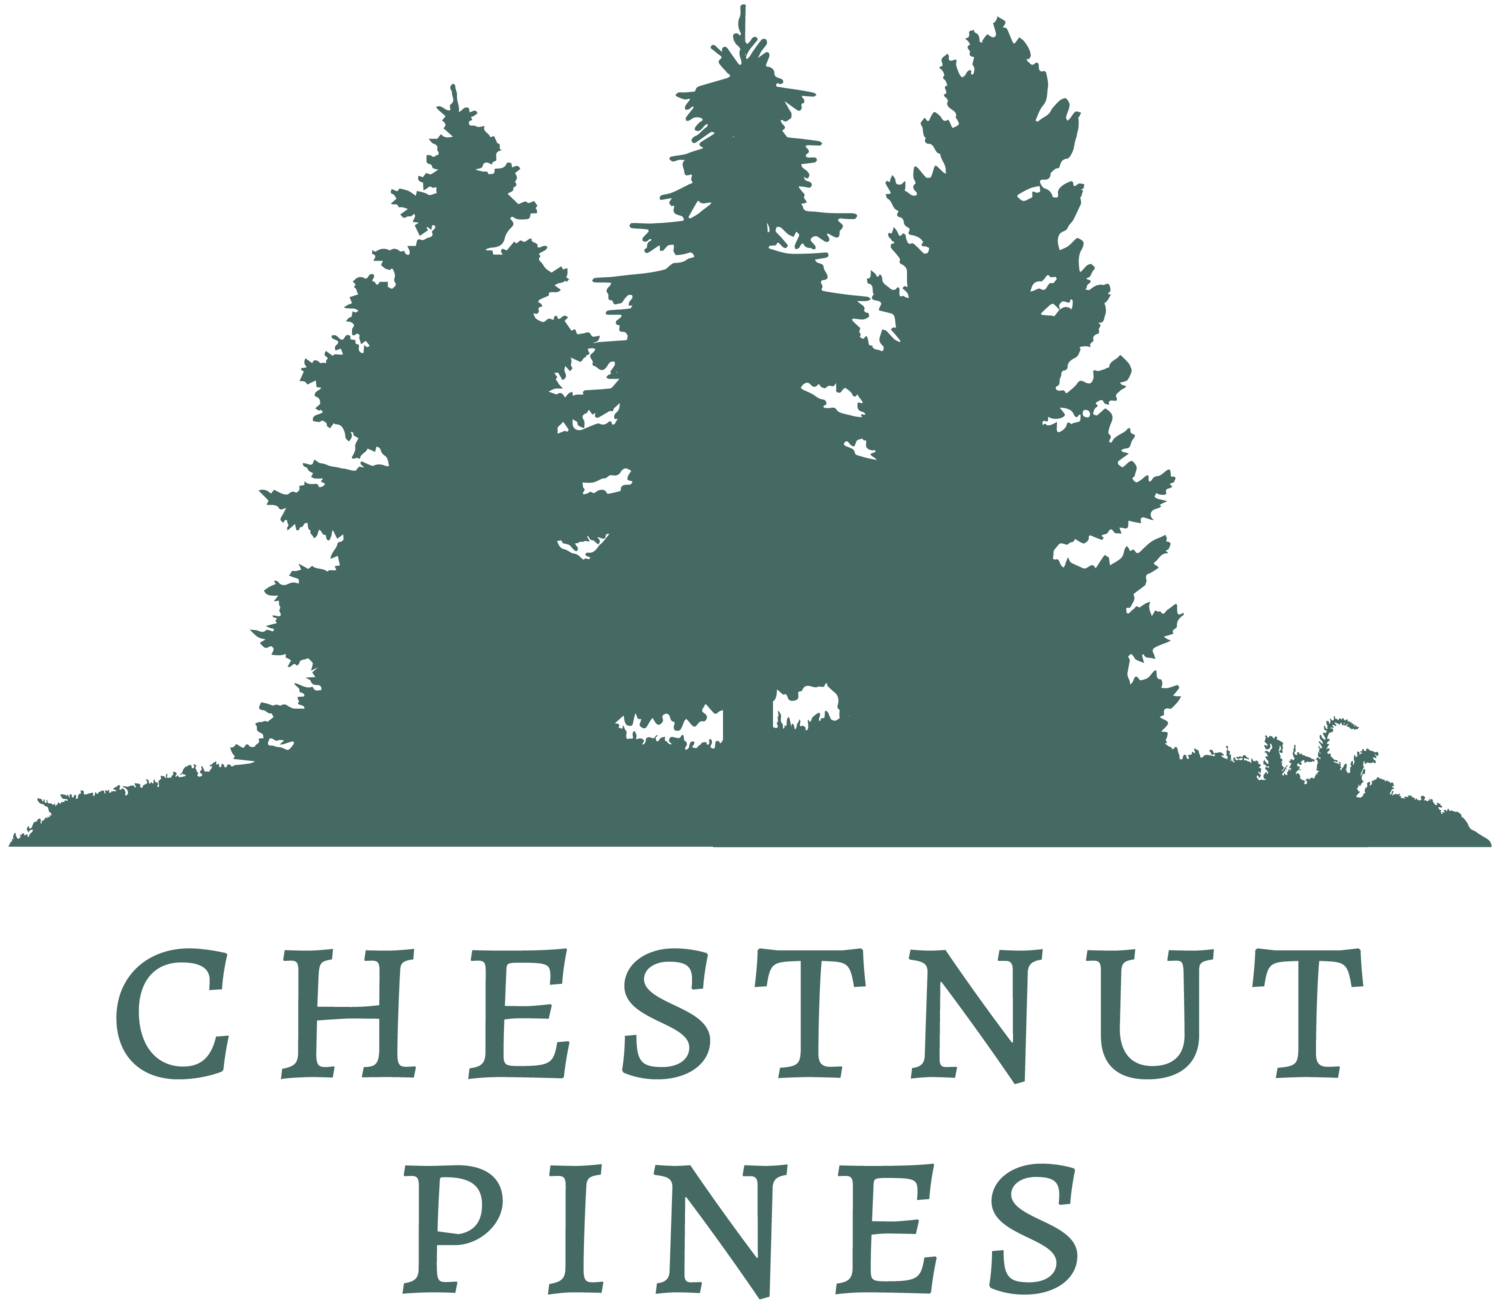 Chestnut Pines